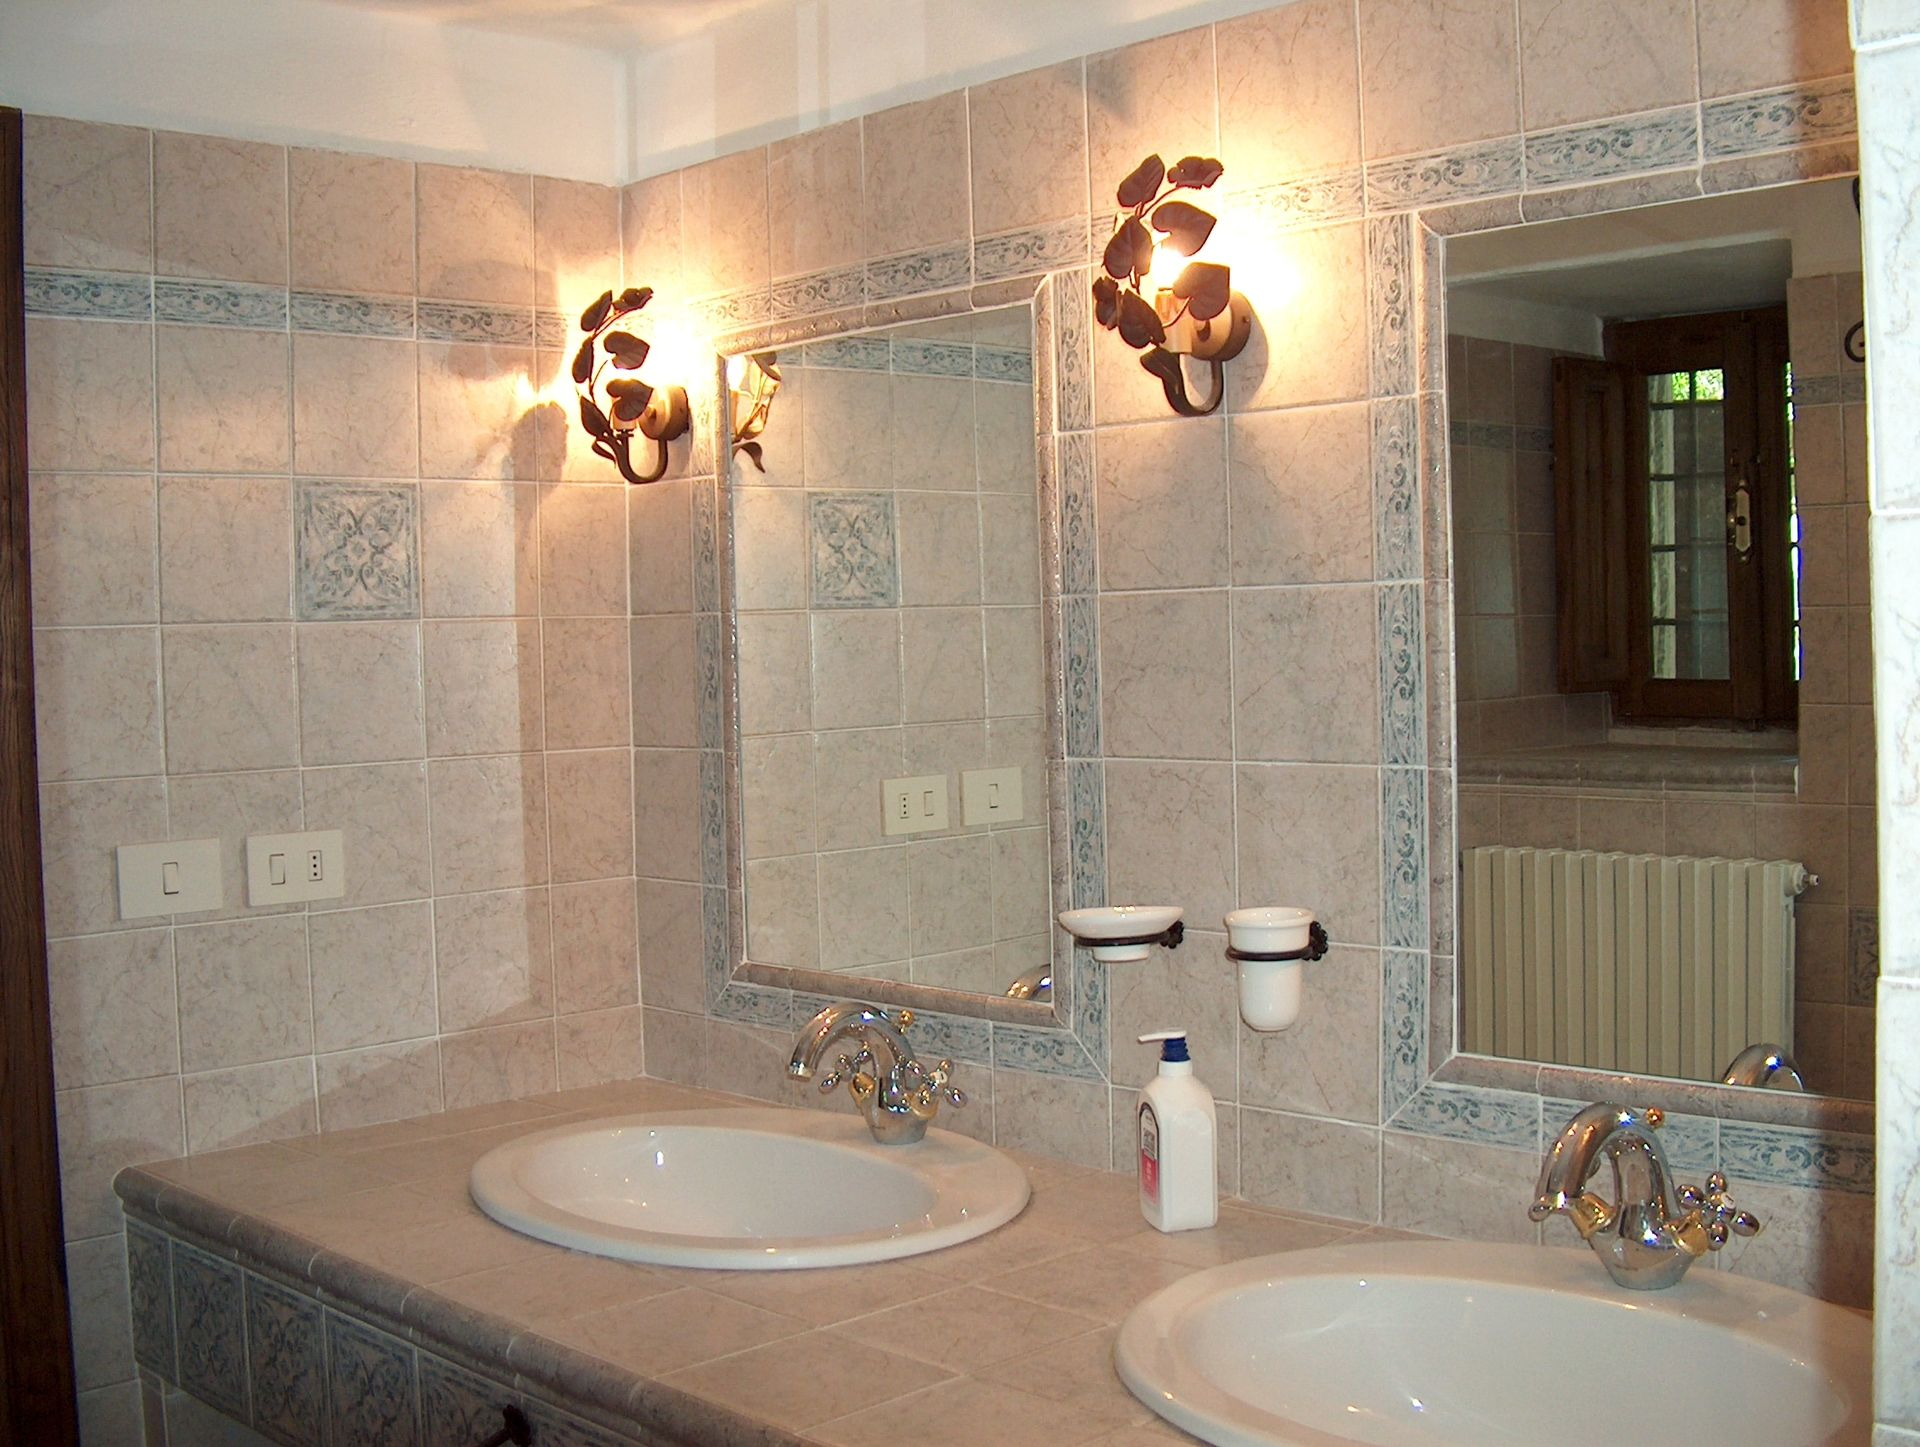 Villa Sant'Agnese, first bathroom